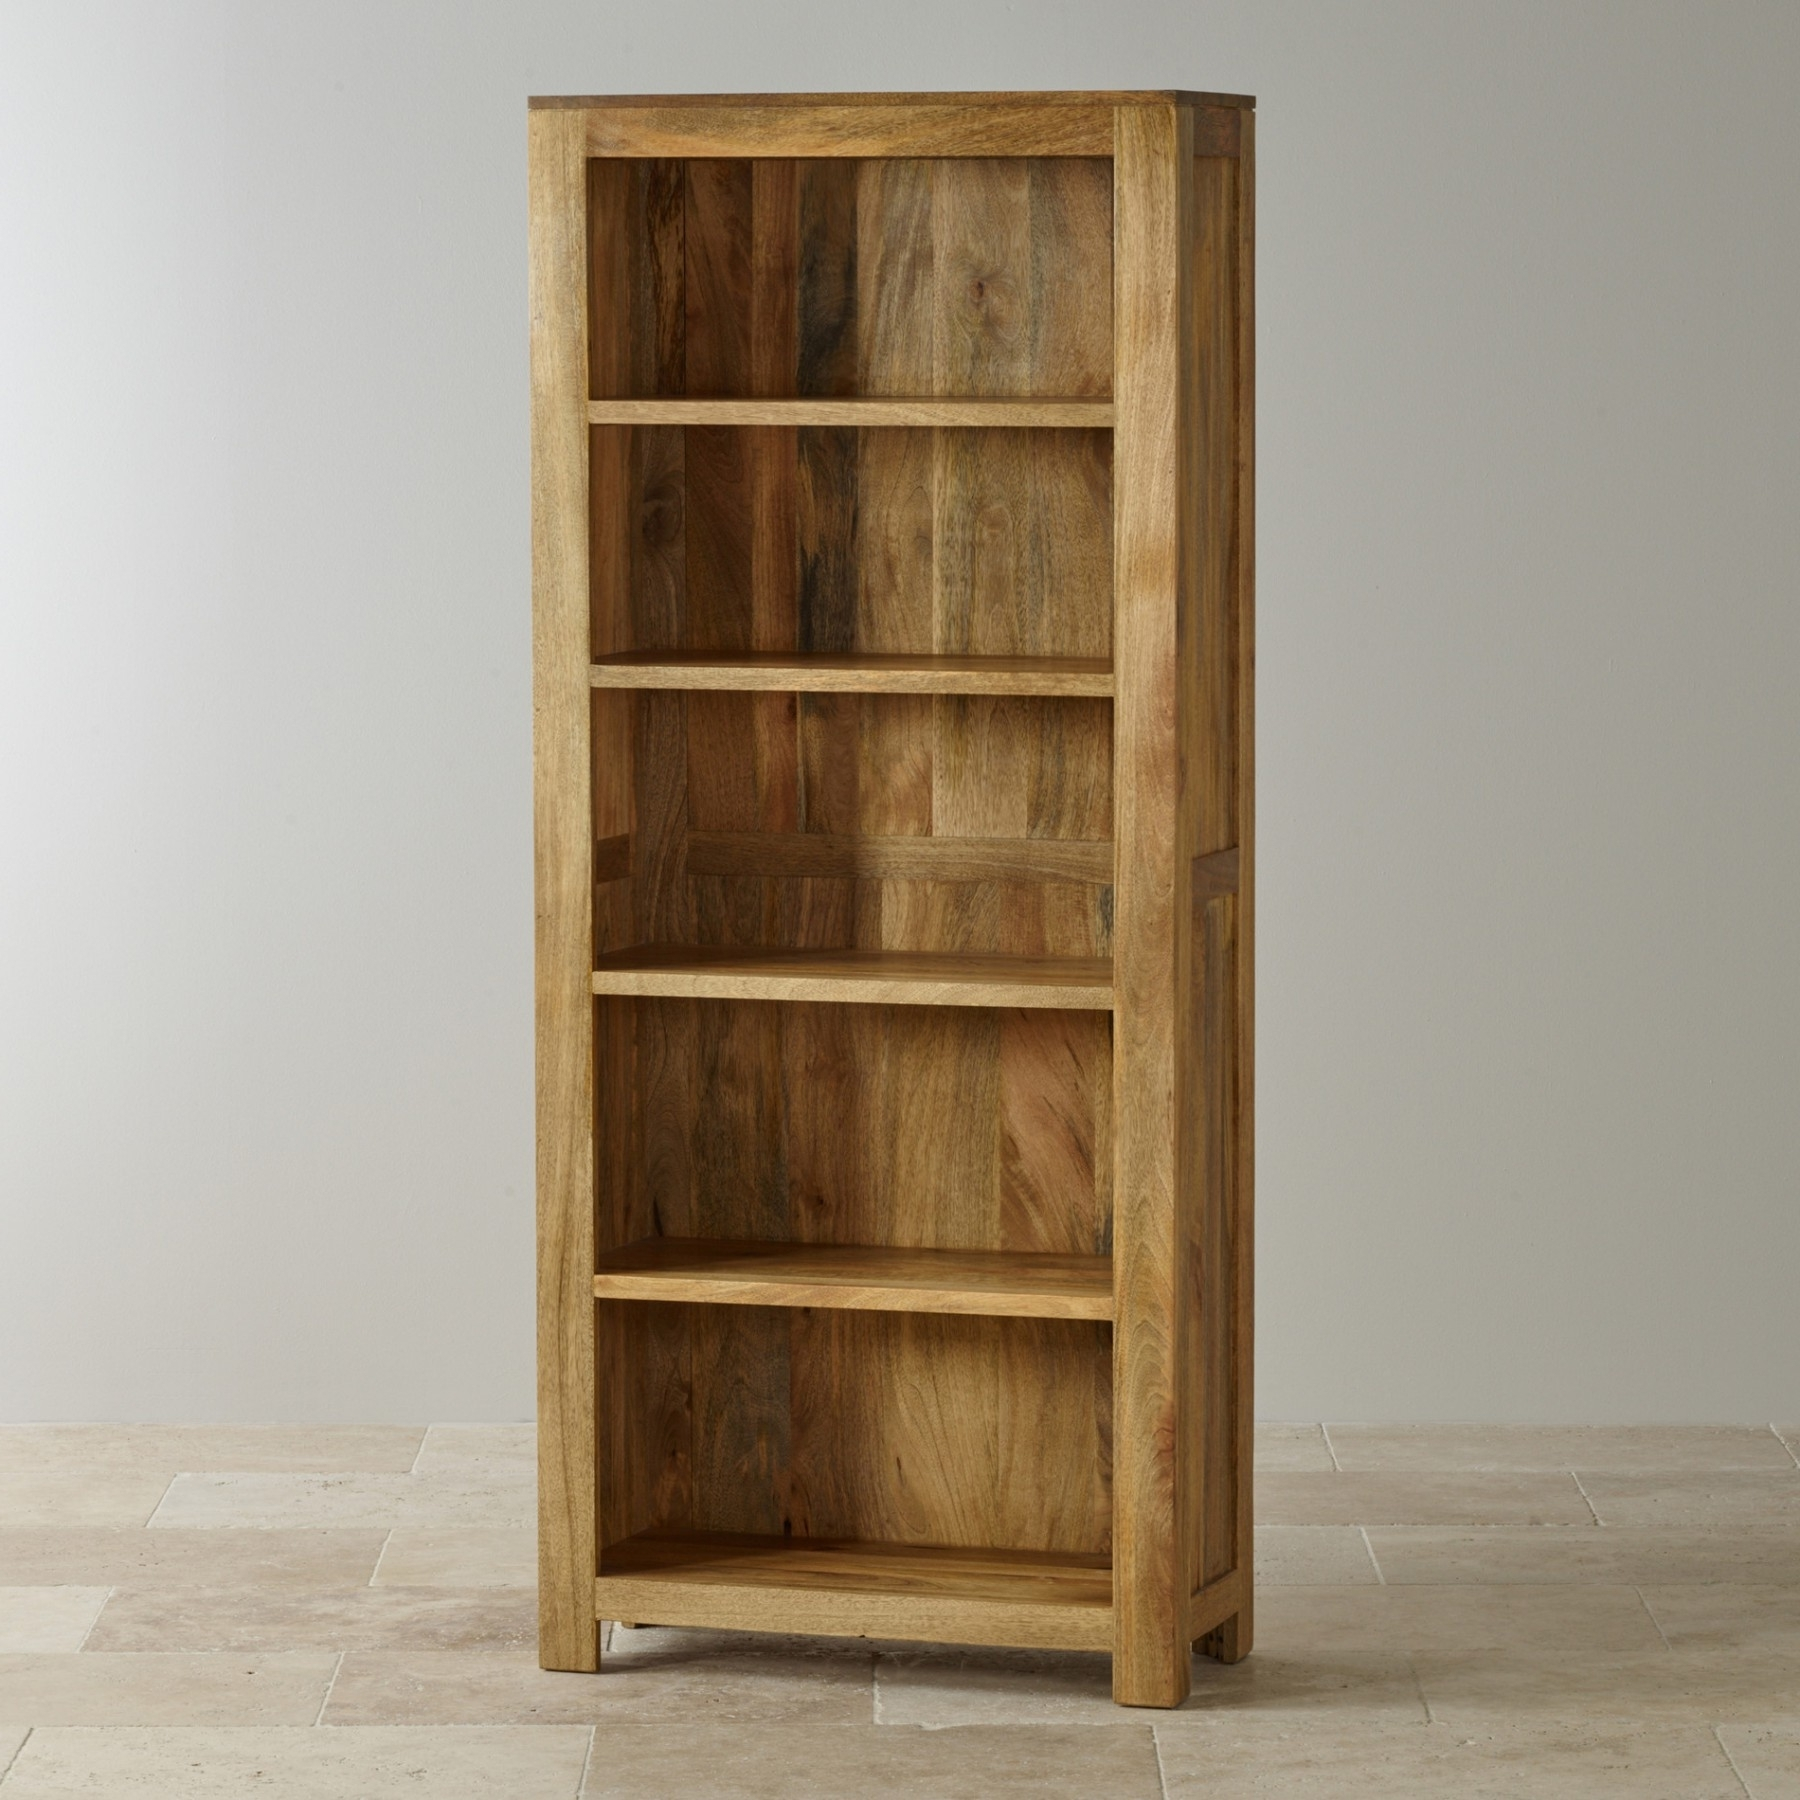 Most Popular Solid Oak Bookcases In Bookcases & Bookshelves (View 9 of 15)